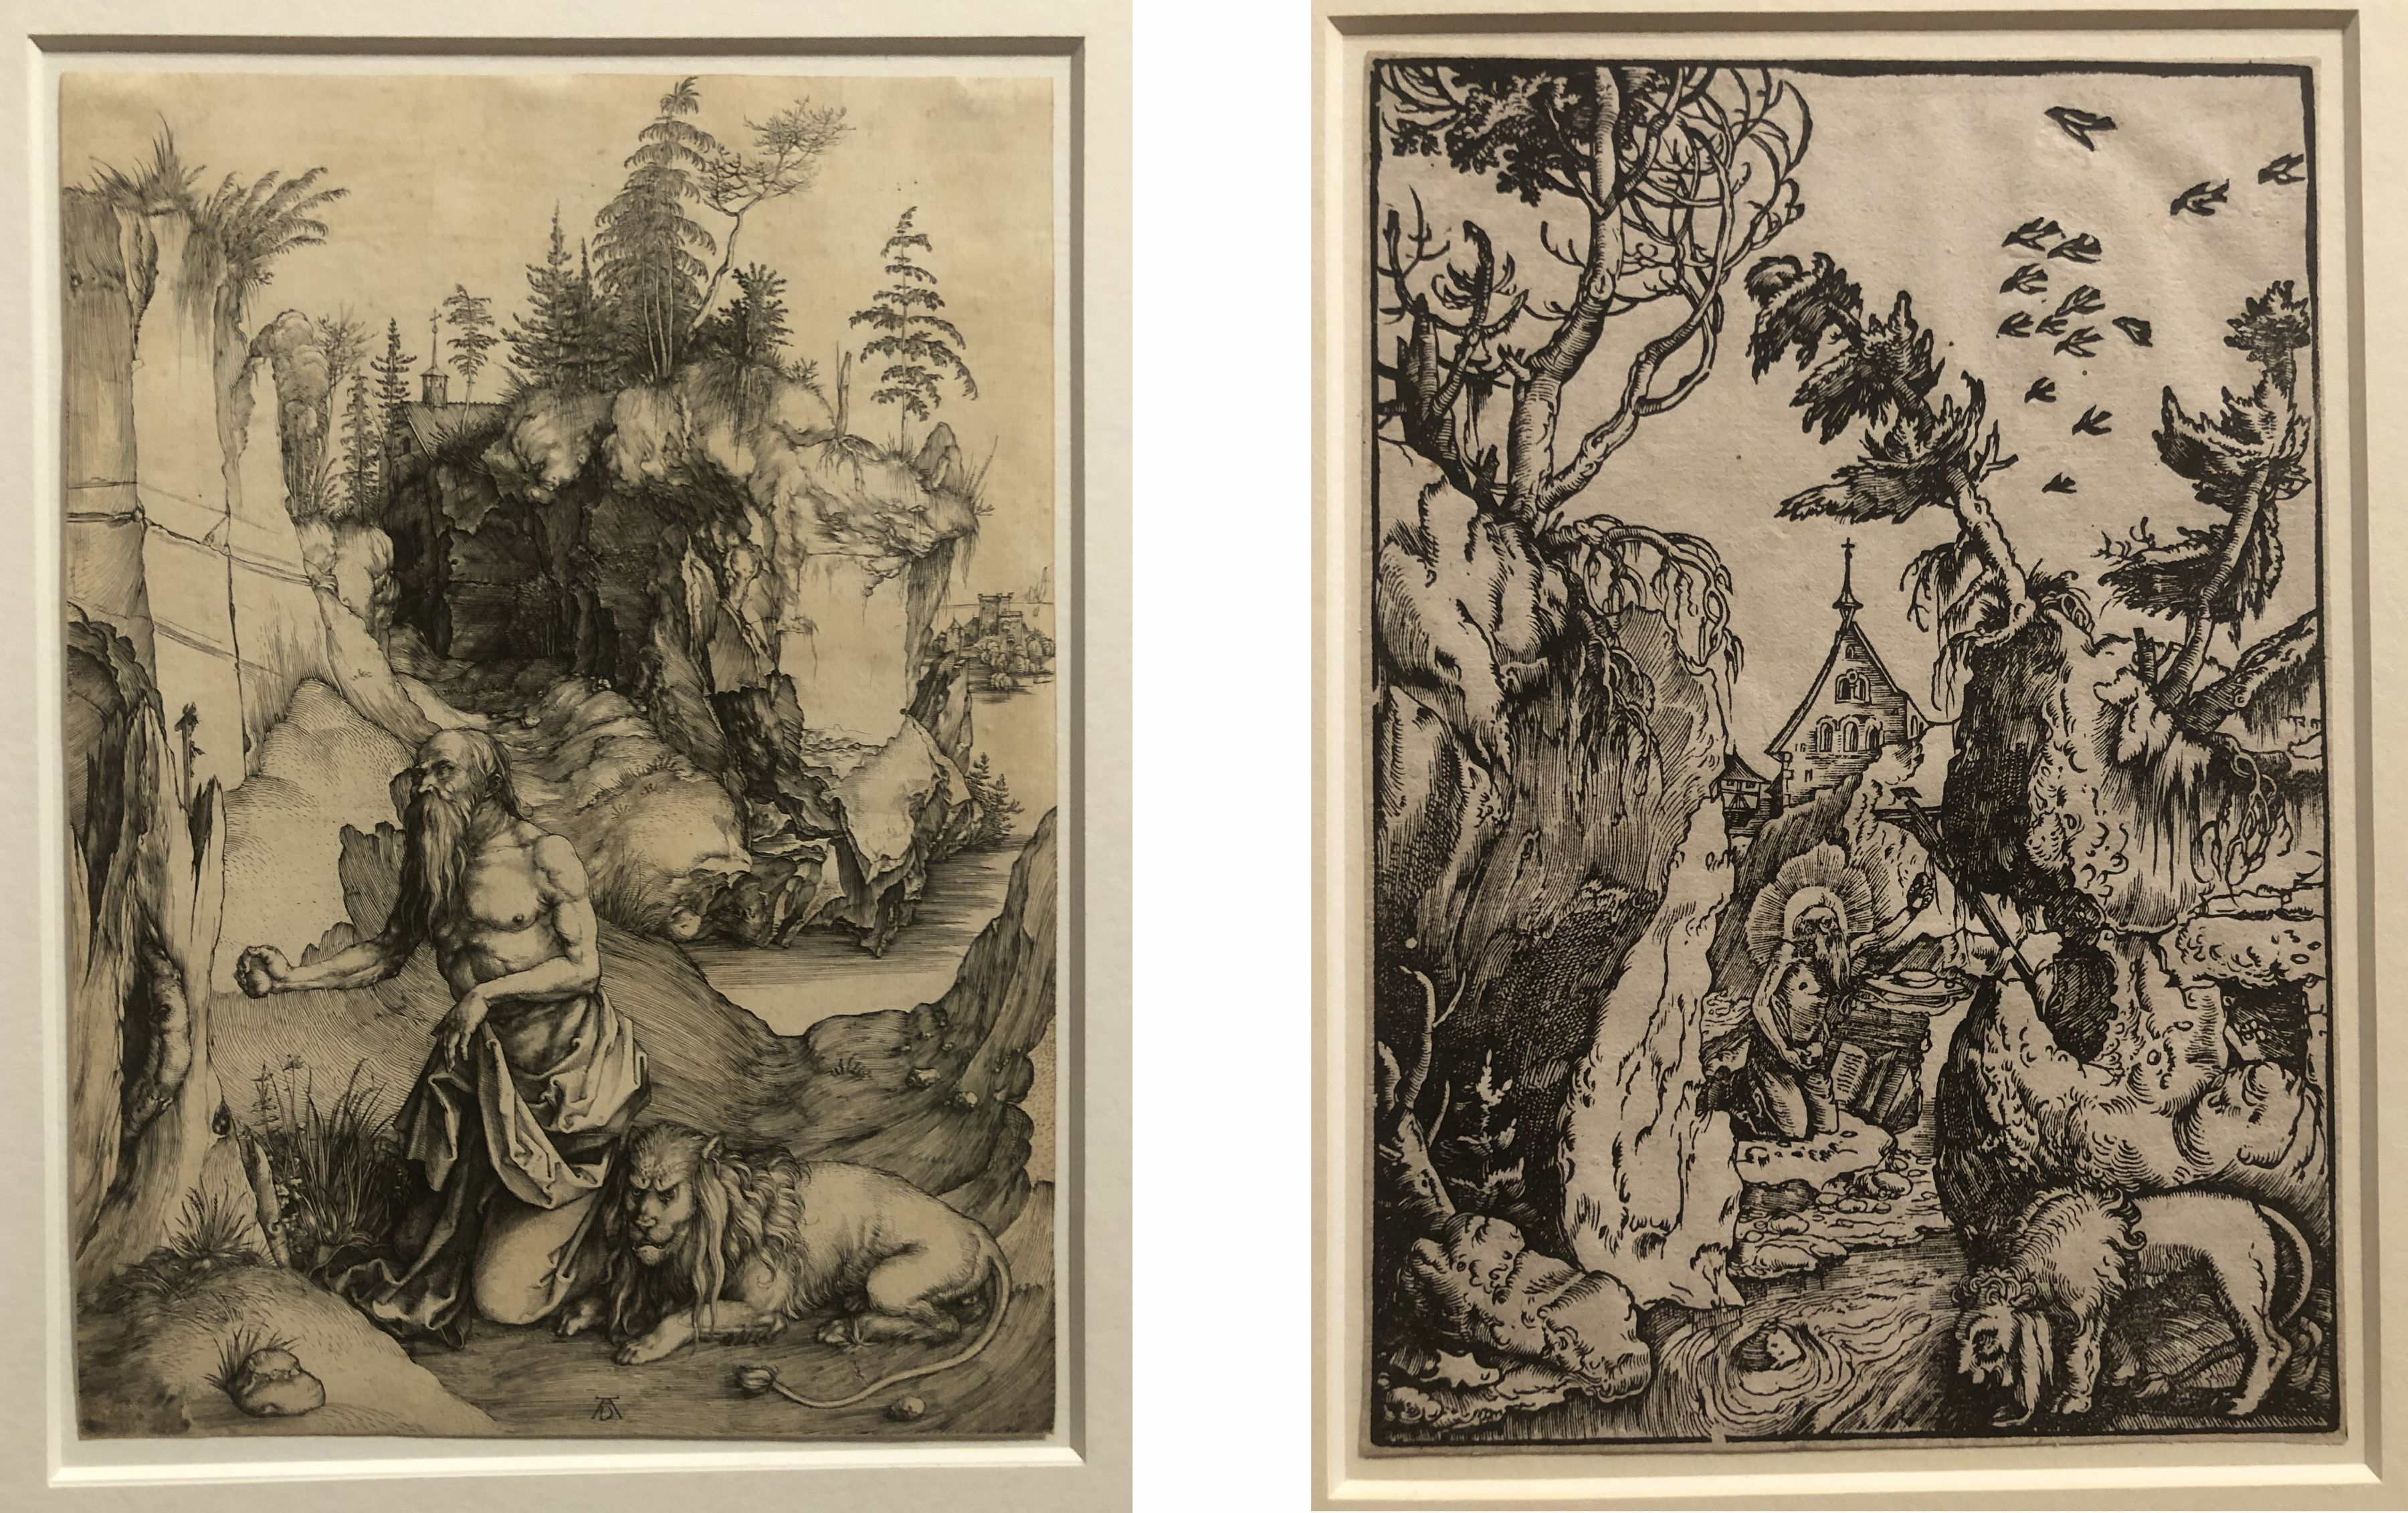 Albrecht Dürer, St. Jerome in a Landscape, etching, ca. 1496, 31.2 x 22.5cm, Collection K. and U. Schulz, Karlsruhe/ Right: Fig. 8 Hans Baldung Grien, St. Jerome in a Landscape, woodcut print on paper, ca. 1511, 22.2 x 15.5cm, Hamburger Kunsthalle, Kupferstichkabinett, Hamburg